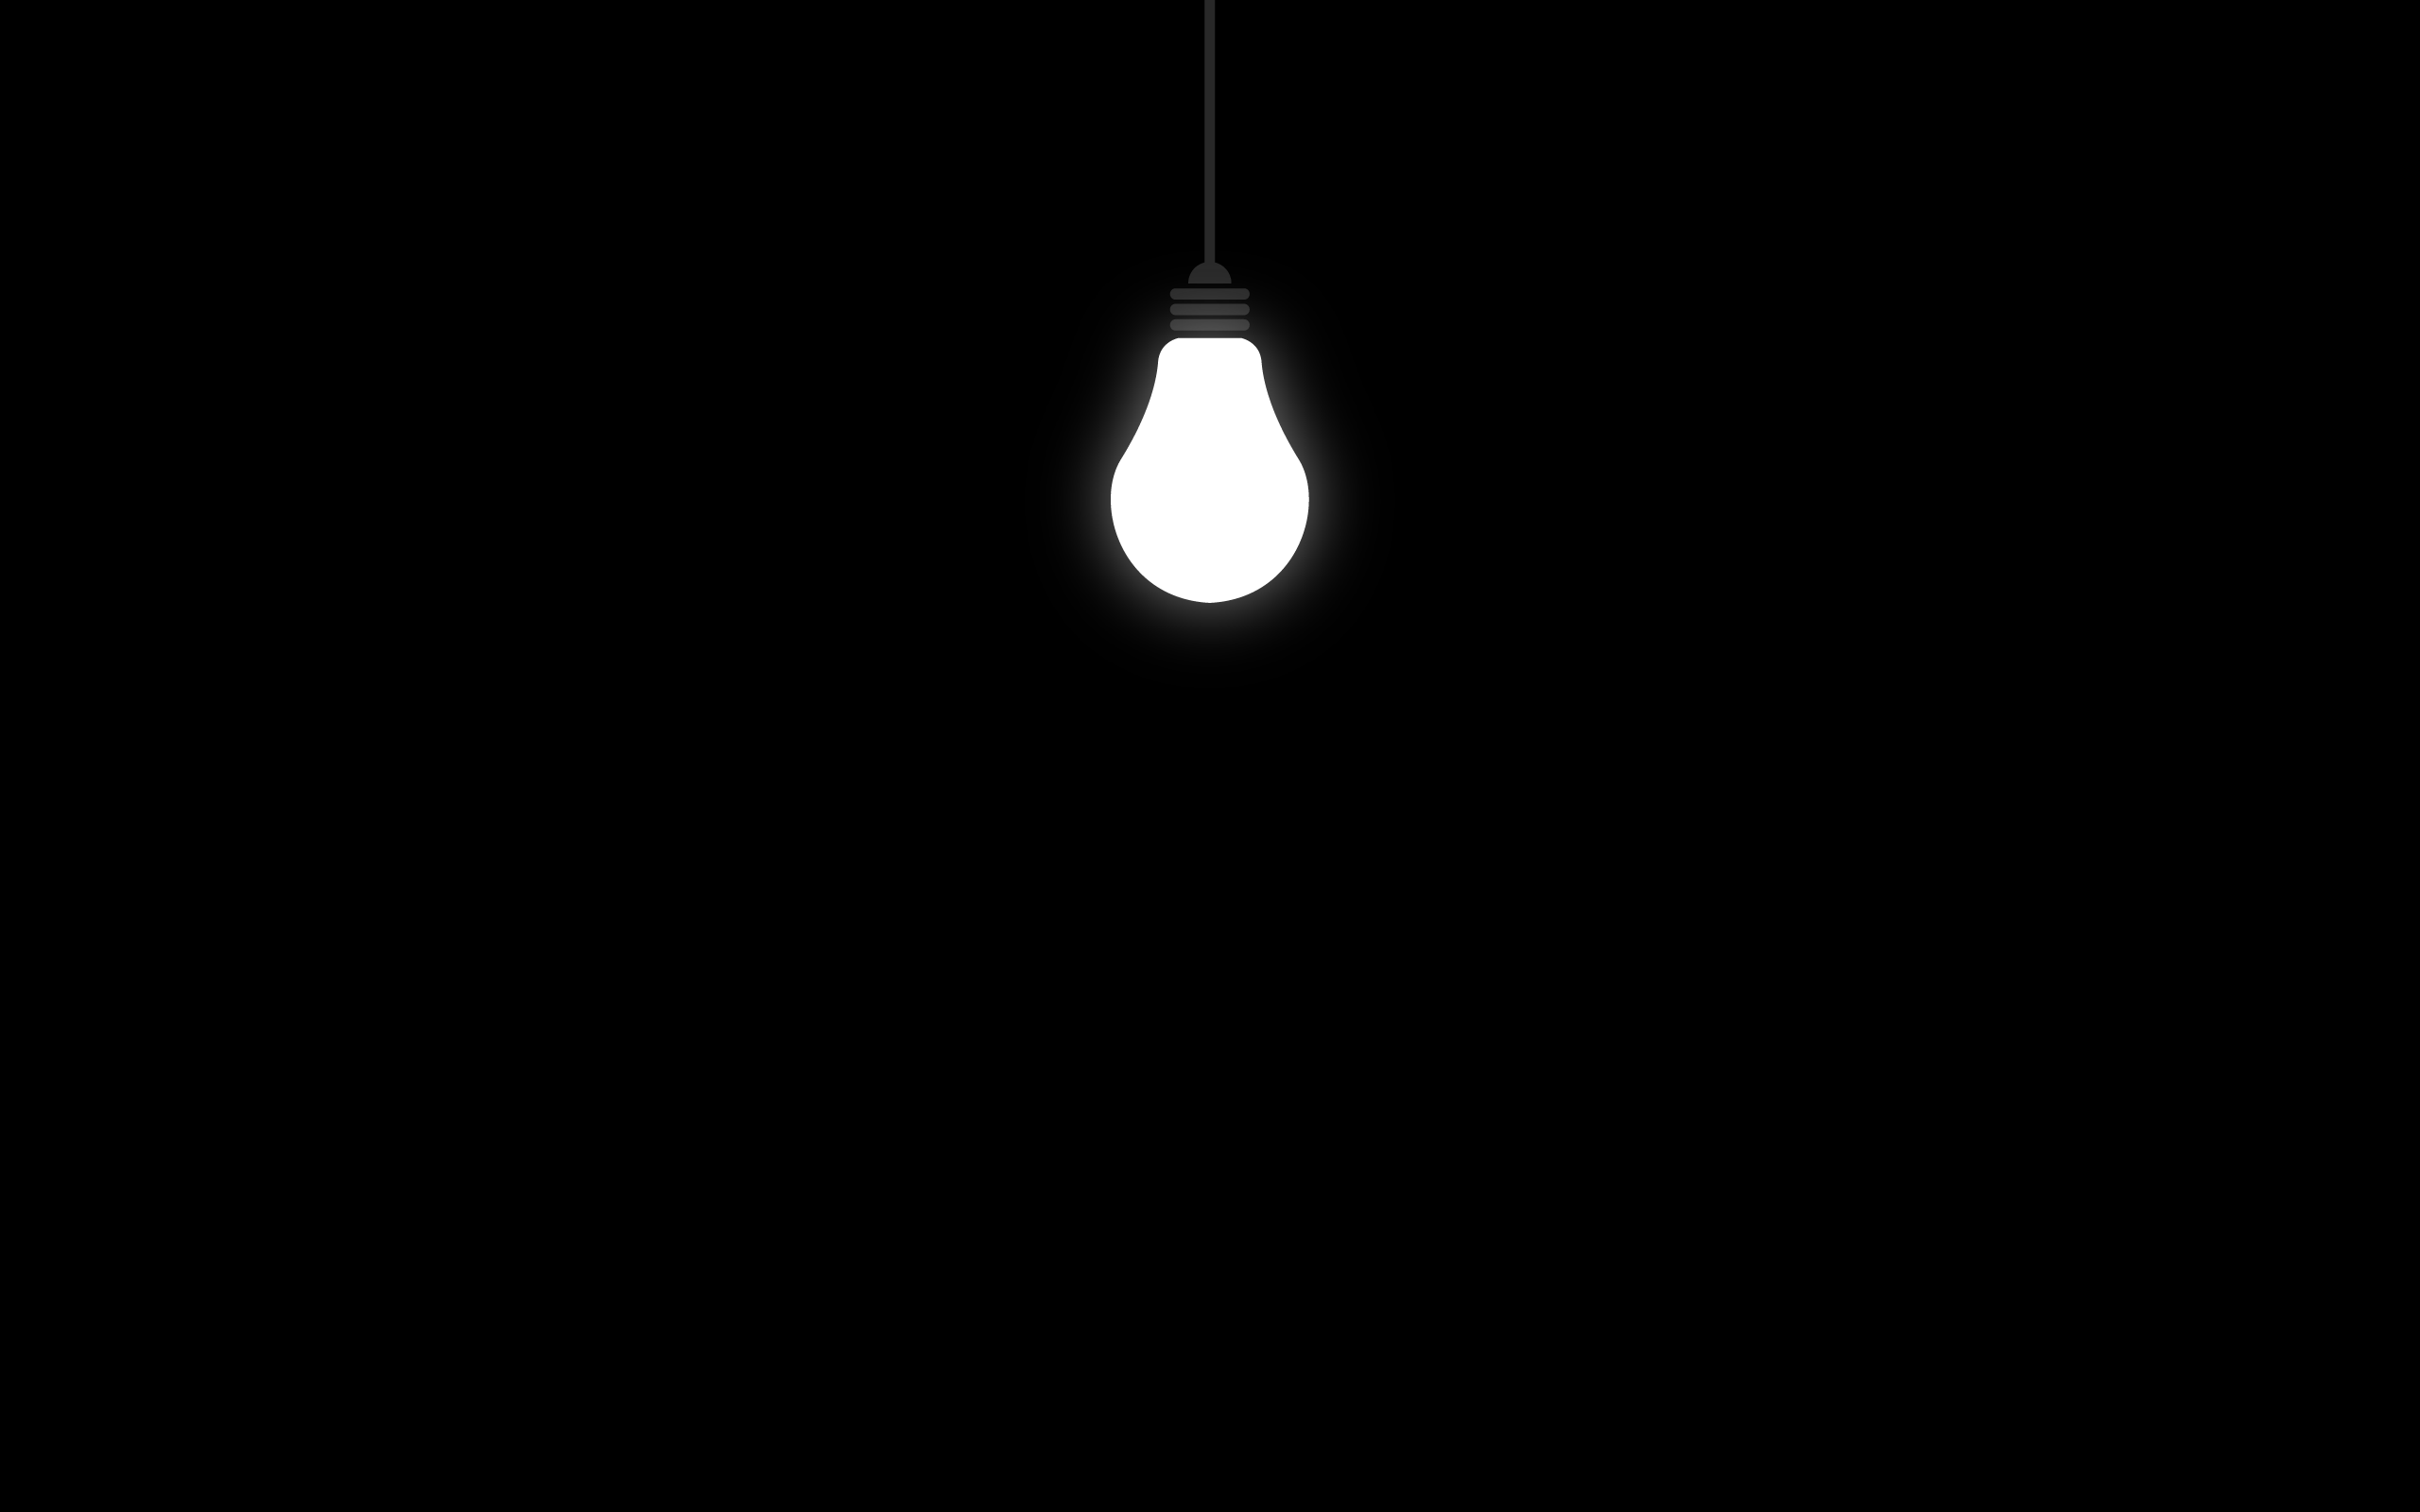 Download Black Wallpaper Android Hd Backgrounds Download